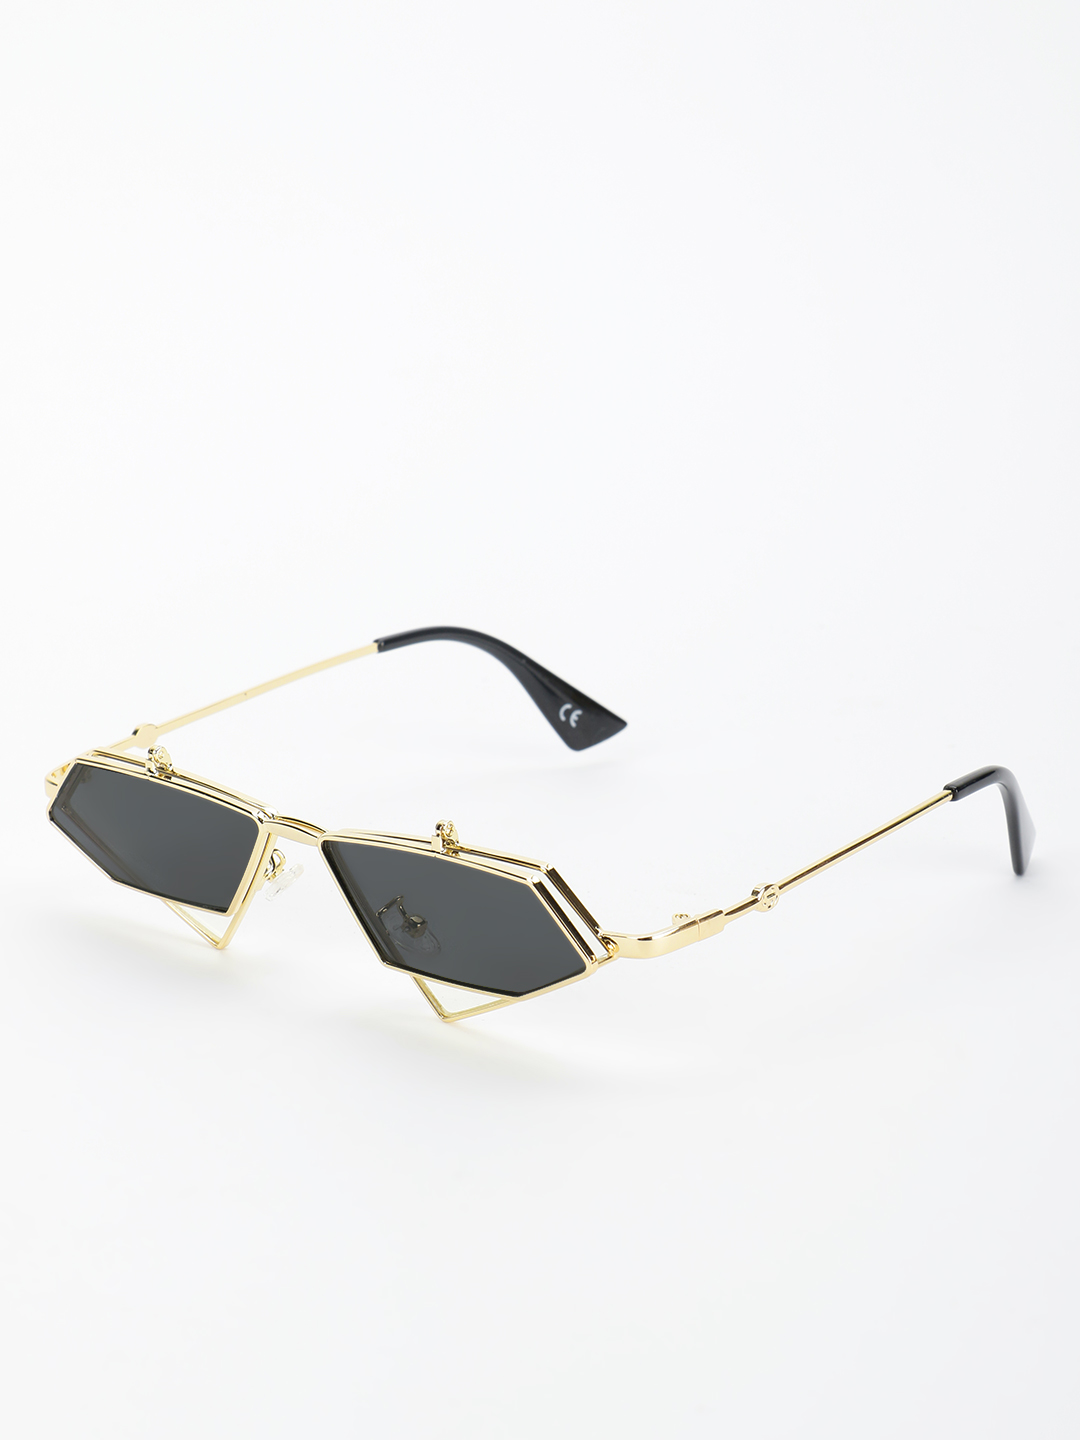 Style Fiesta Black Hexagonal Coloured Lens Retro Sunglasses 1